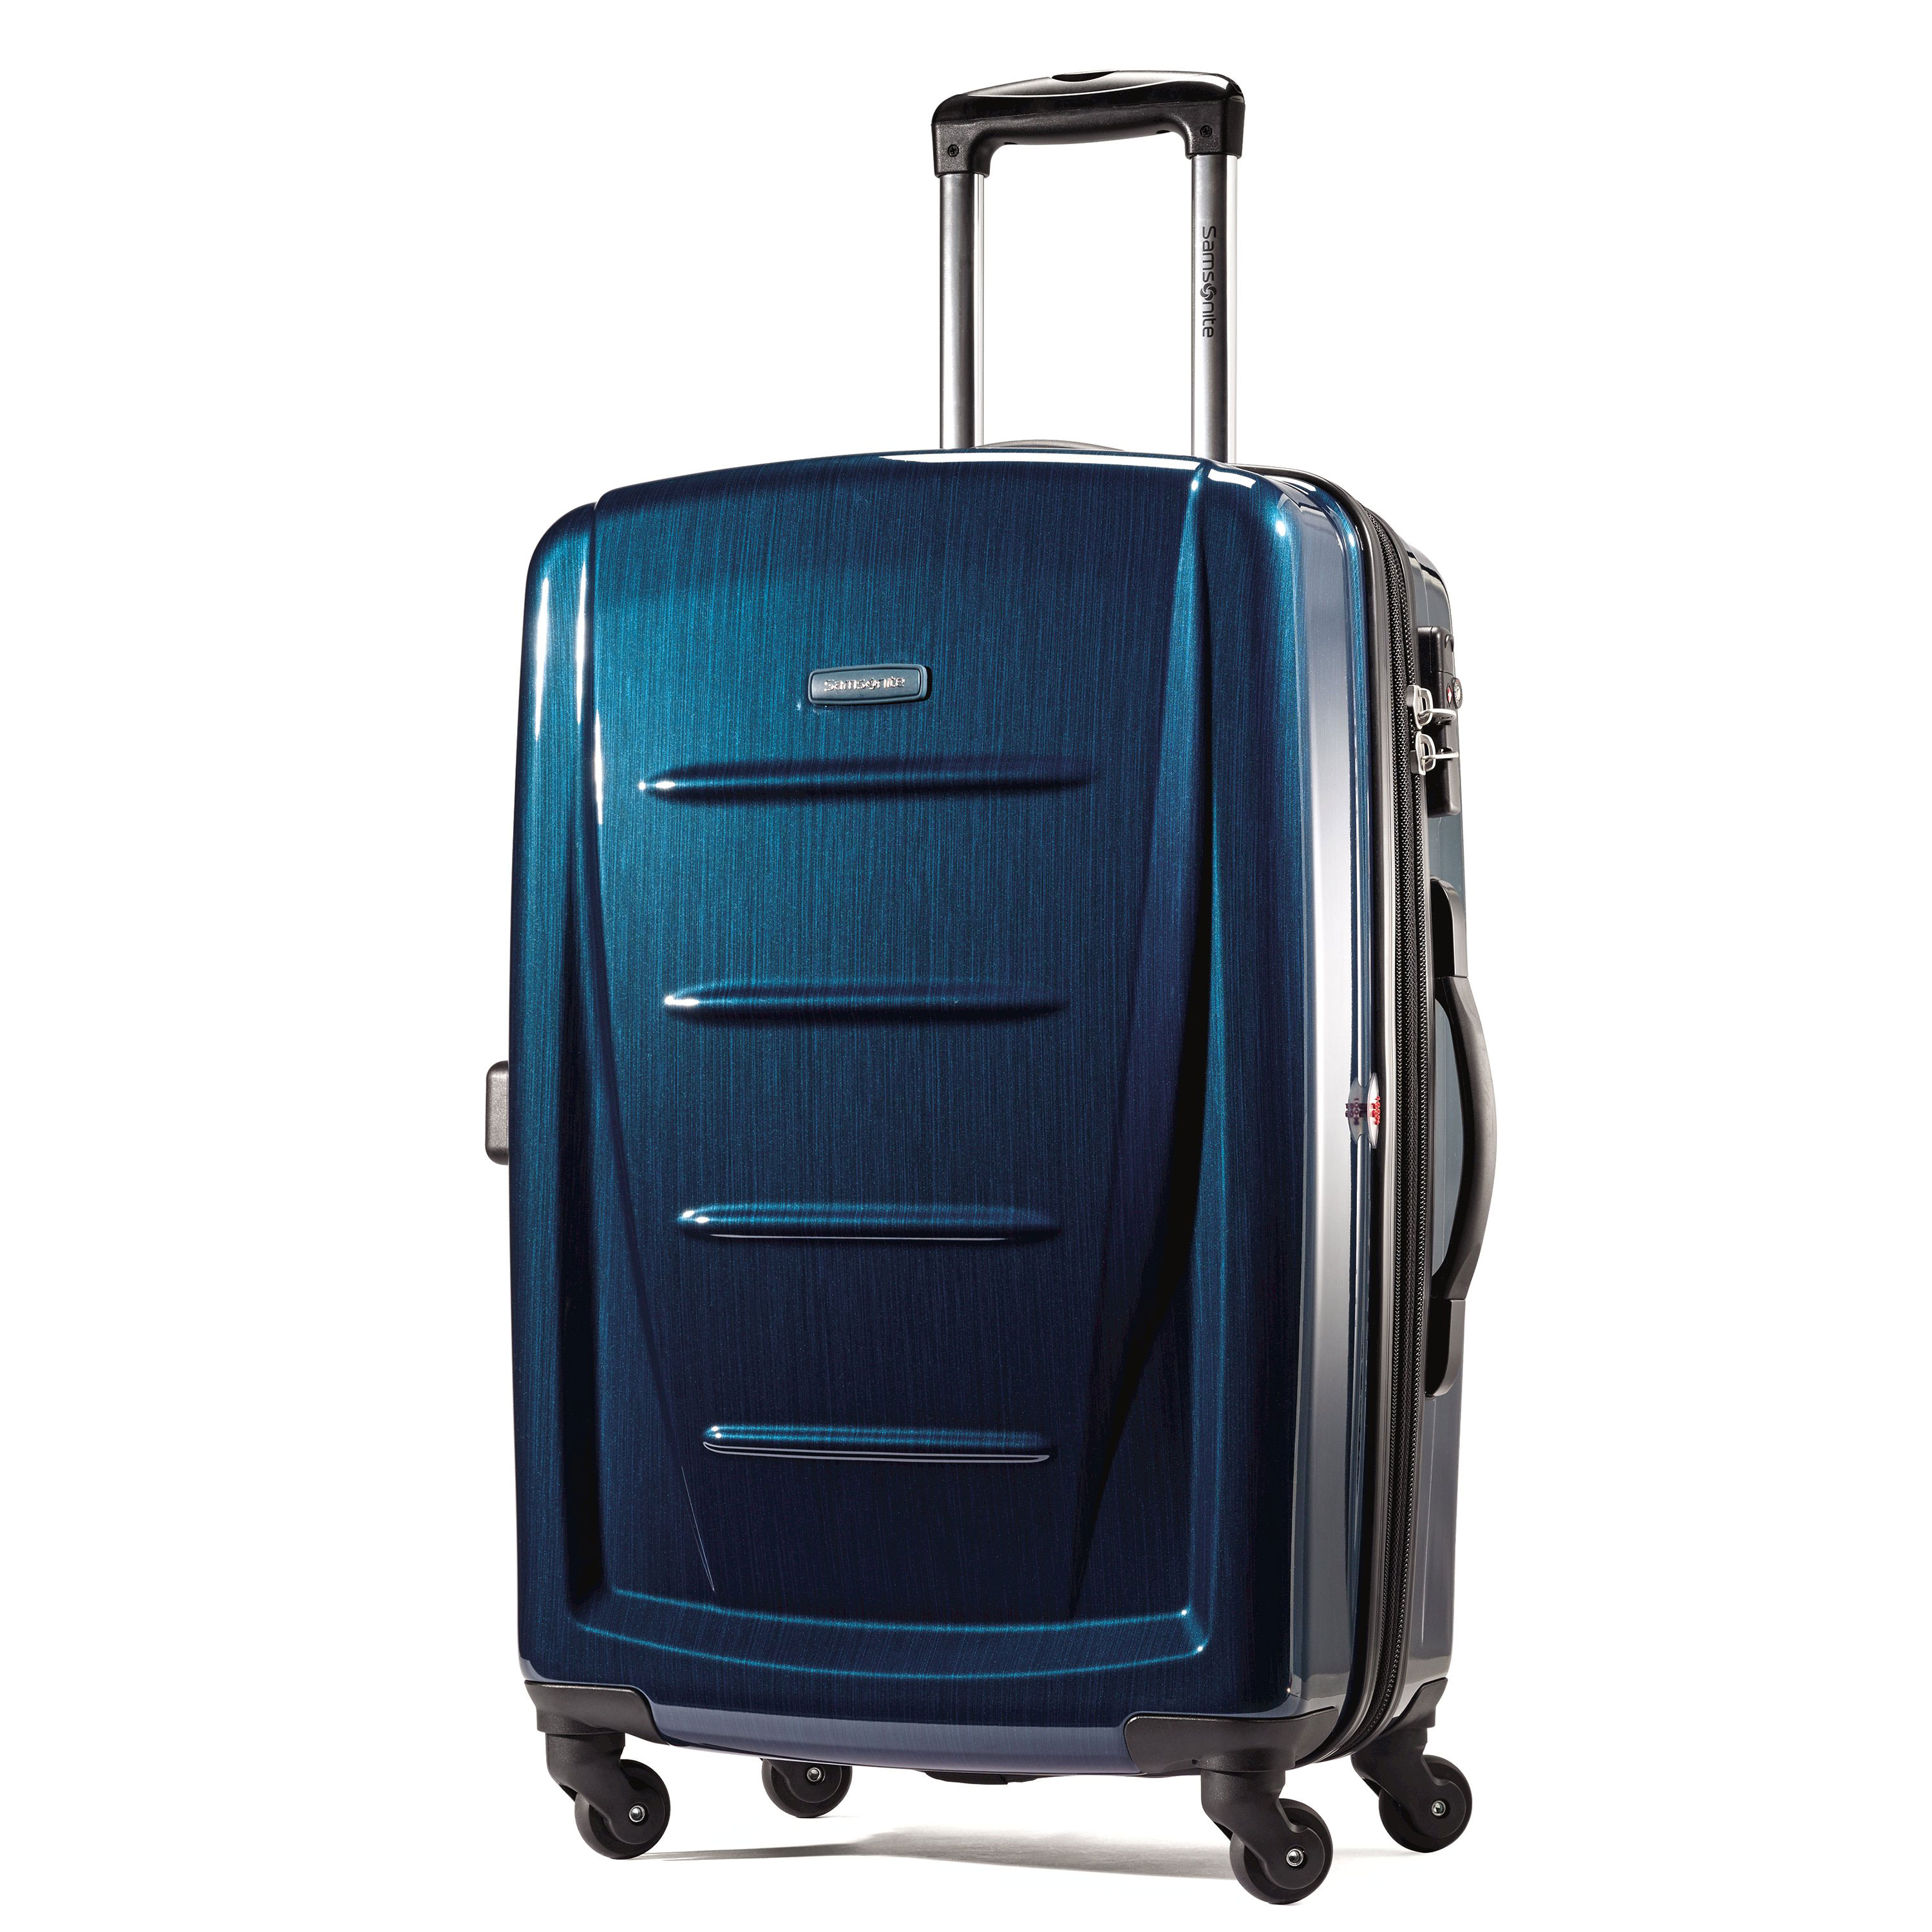 Samsonite-Winfield-2-Fashion-Spinner-Luggage thumbnail 21